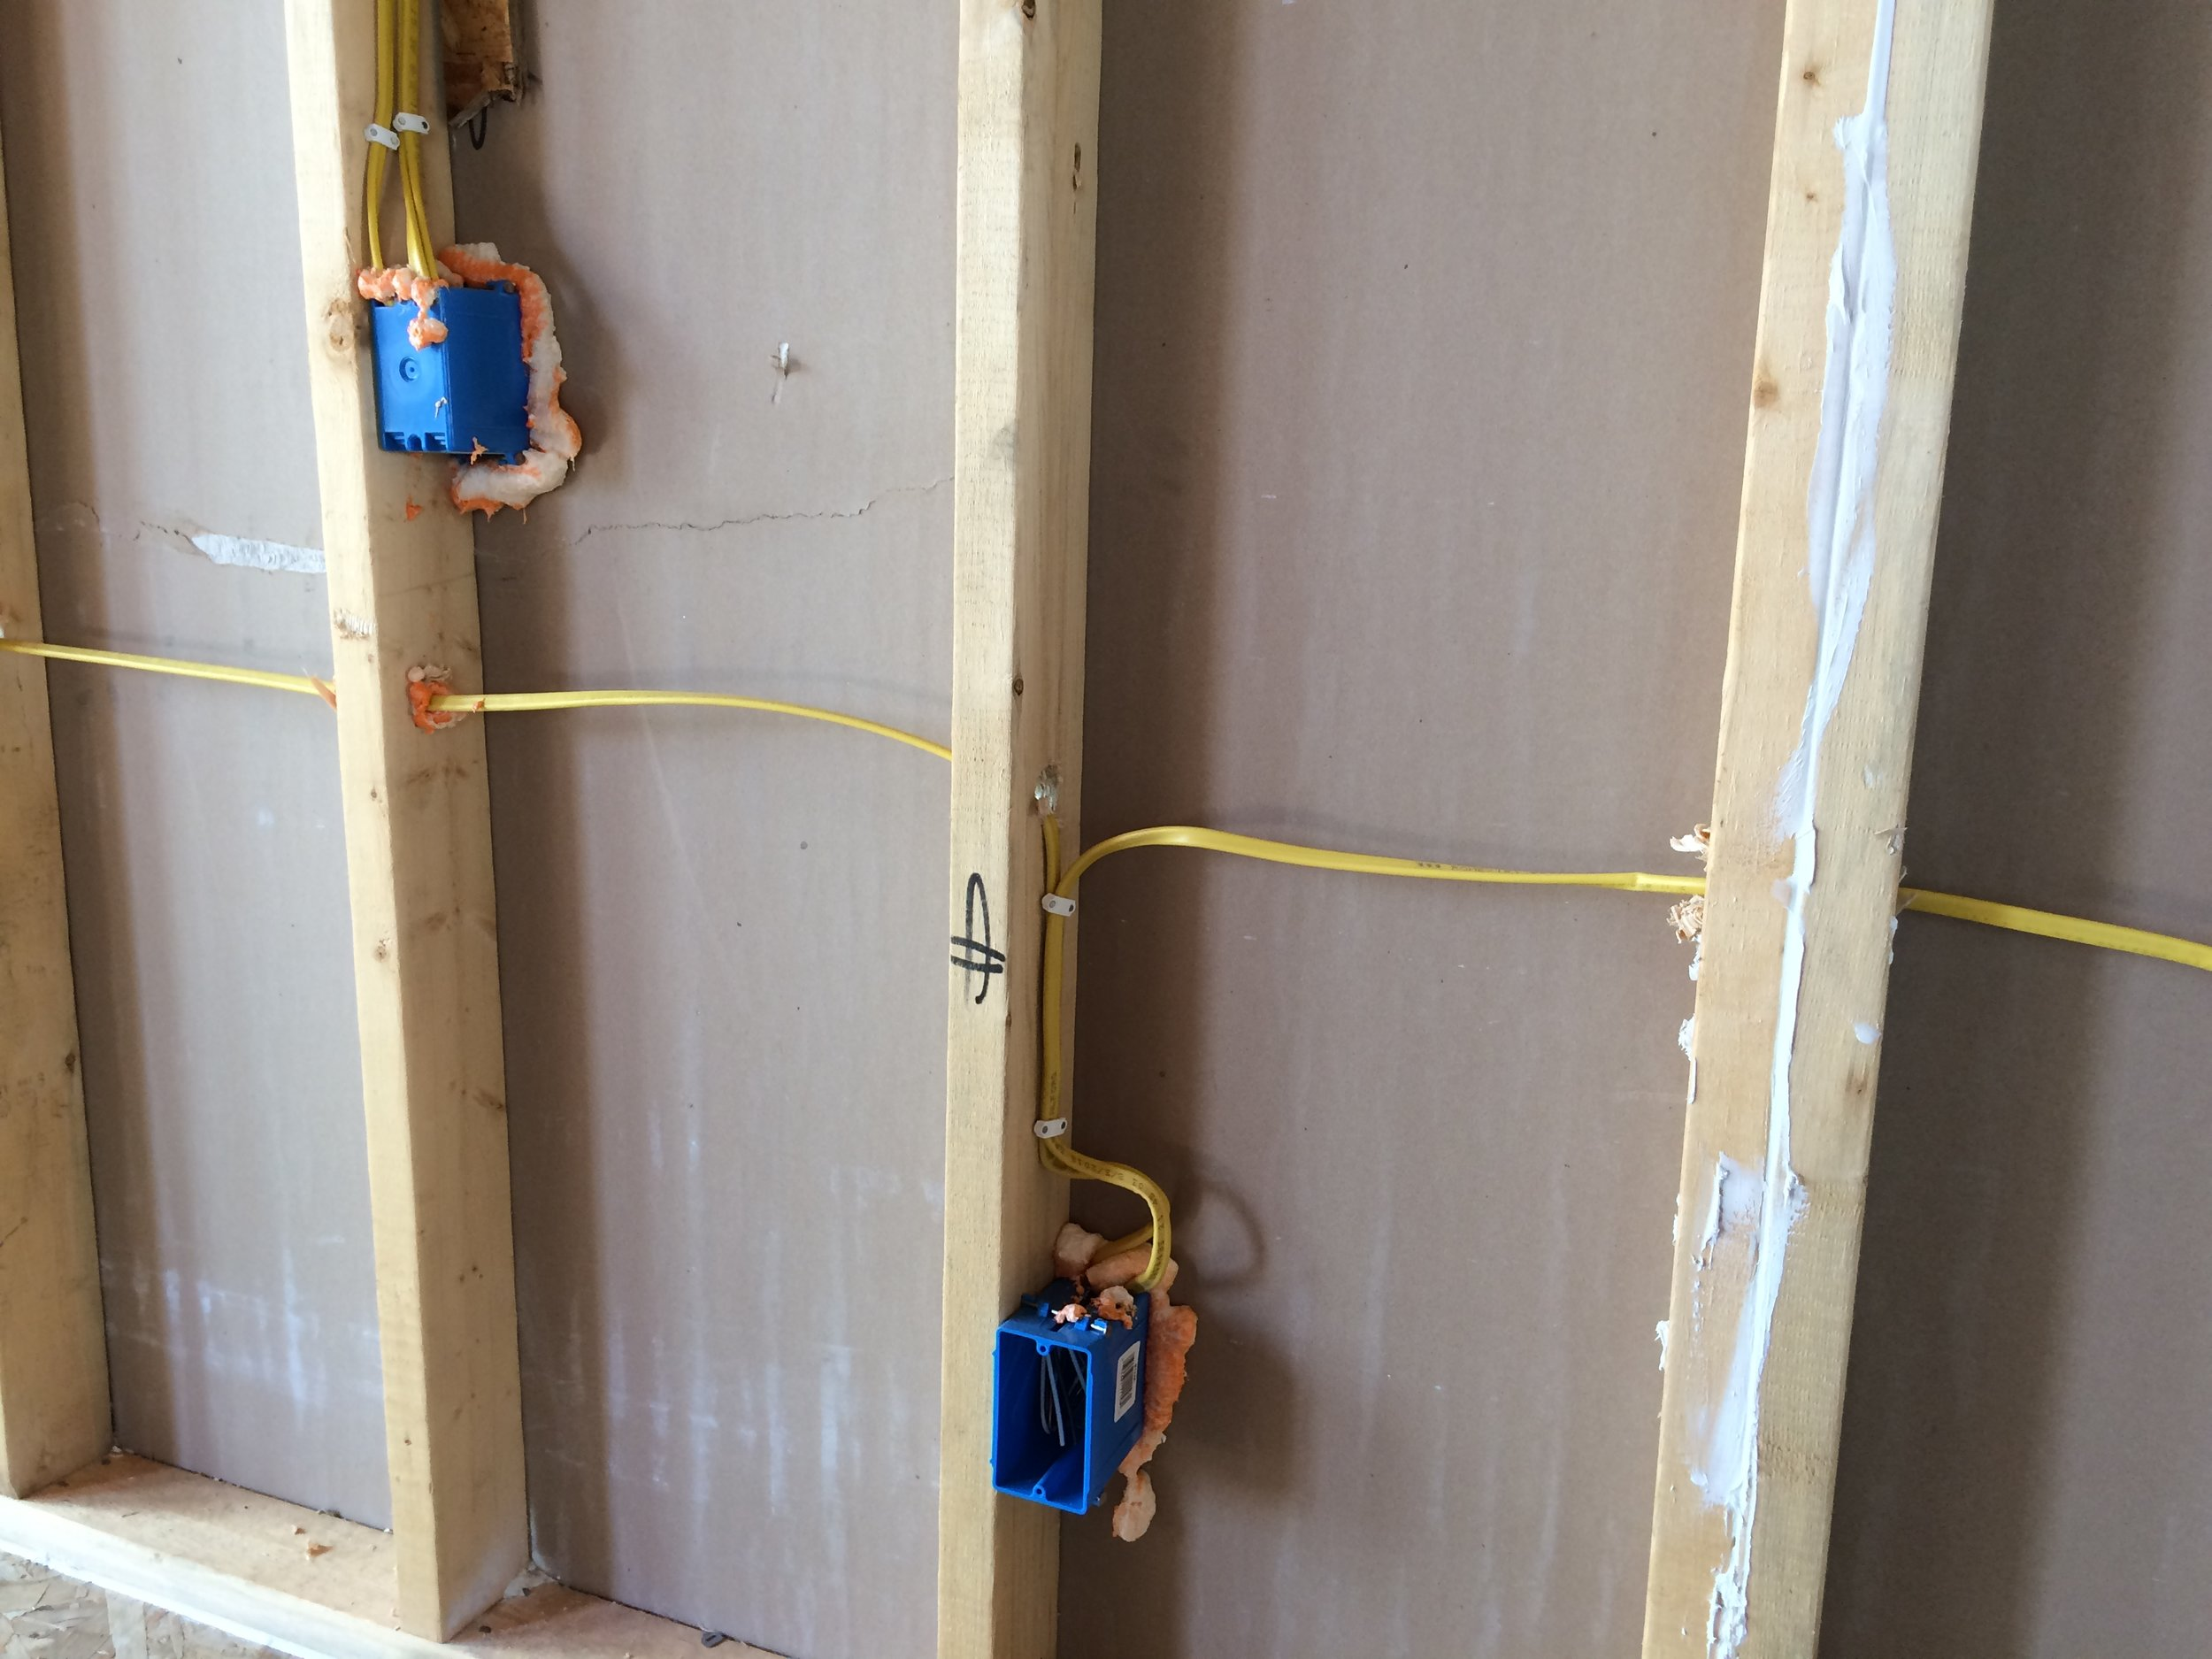 Caulking/Foaming - Caulking and foaming is a critical step closing small air infiltrations between any gaps between framing. Double studs, corners and bottom plate framing is an overlooked airway that needs to be addressed to assure a tight building envelope